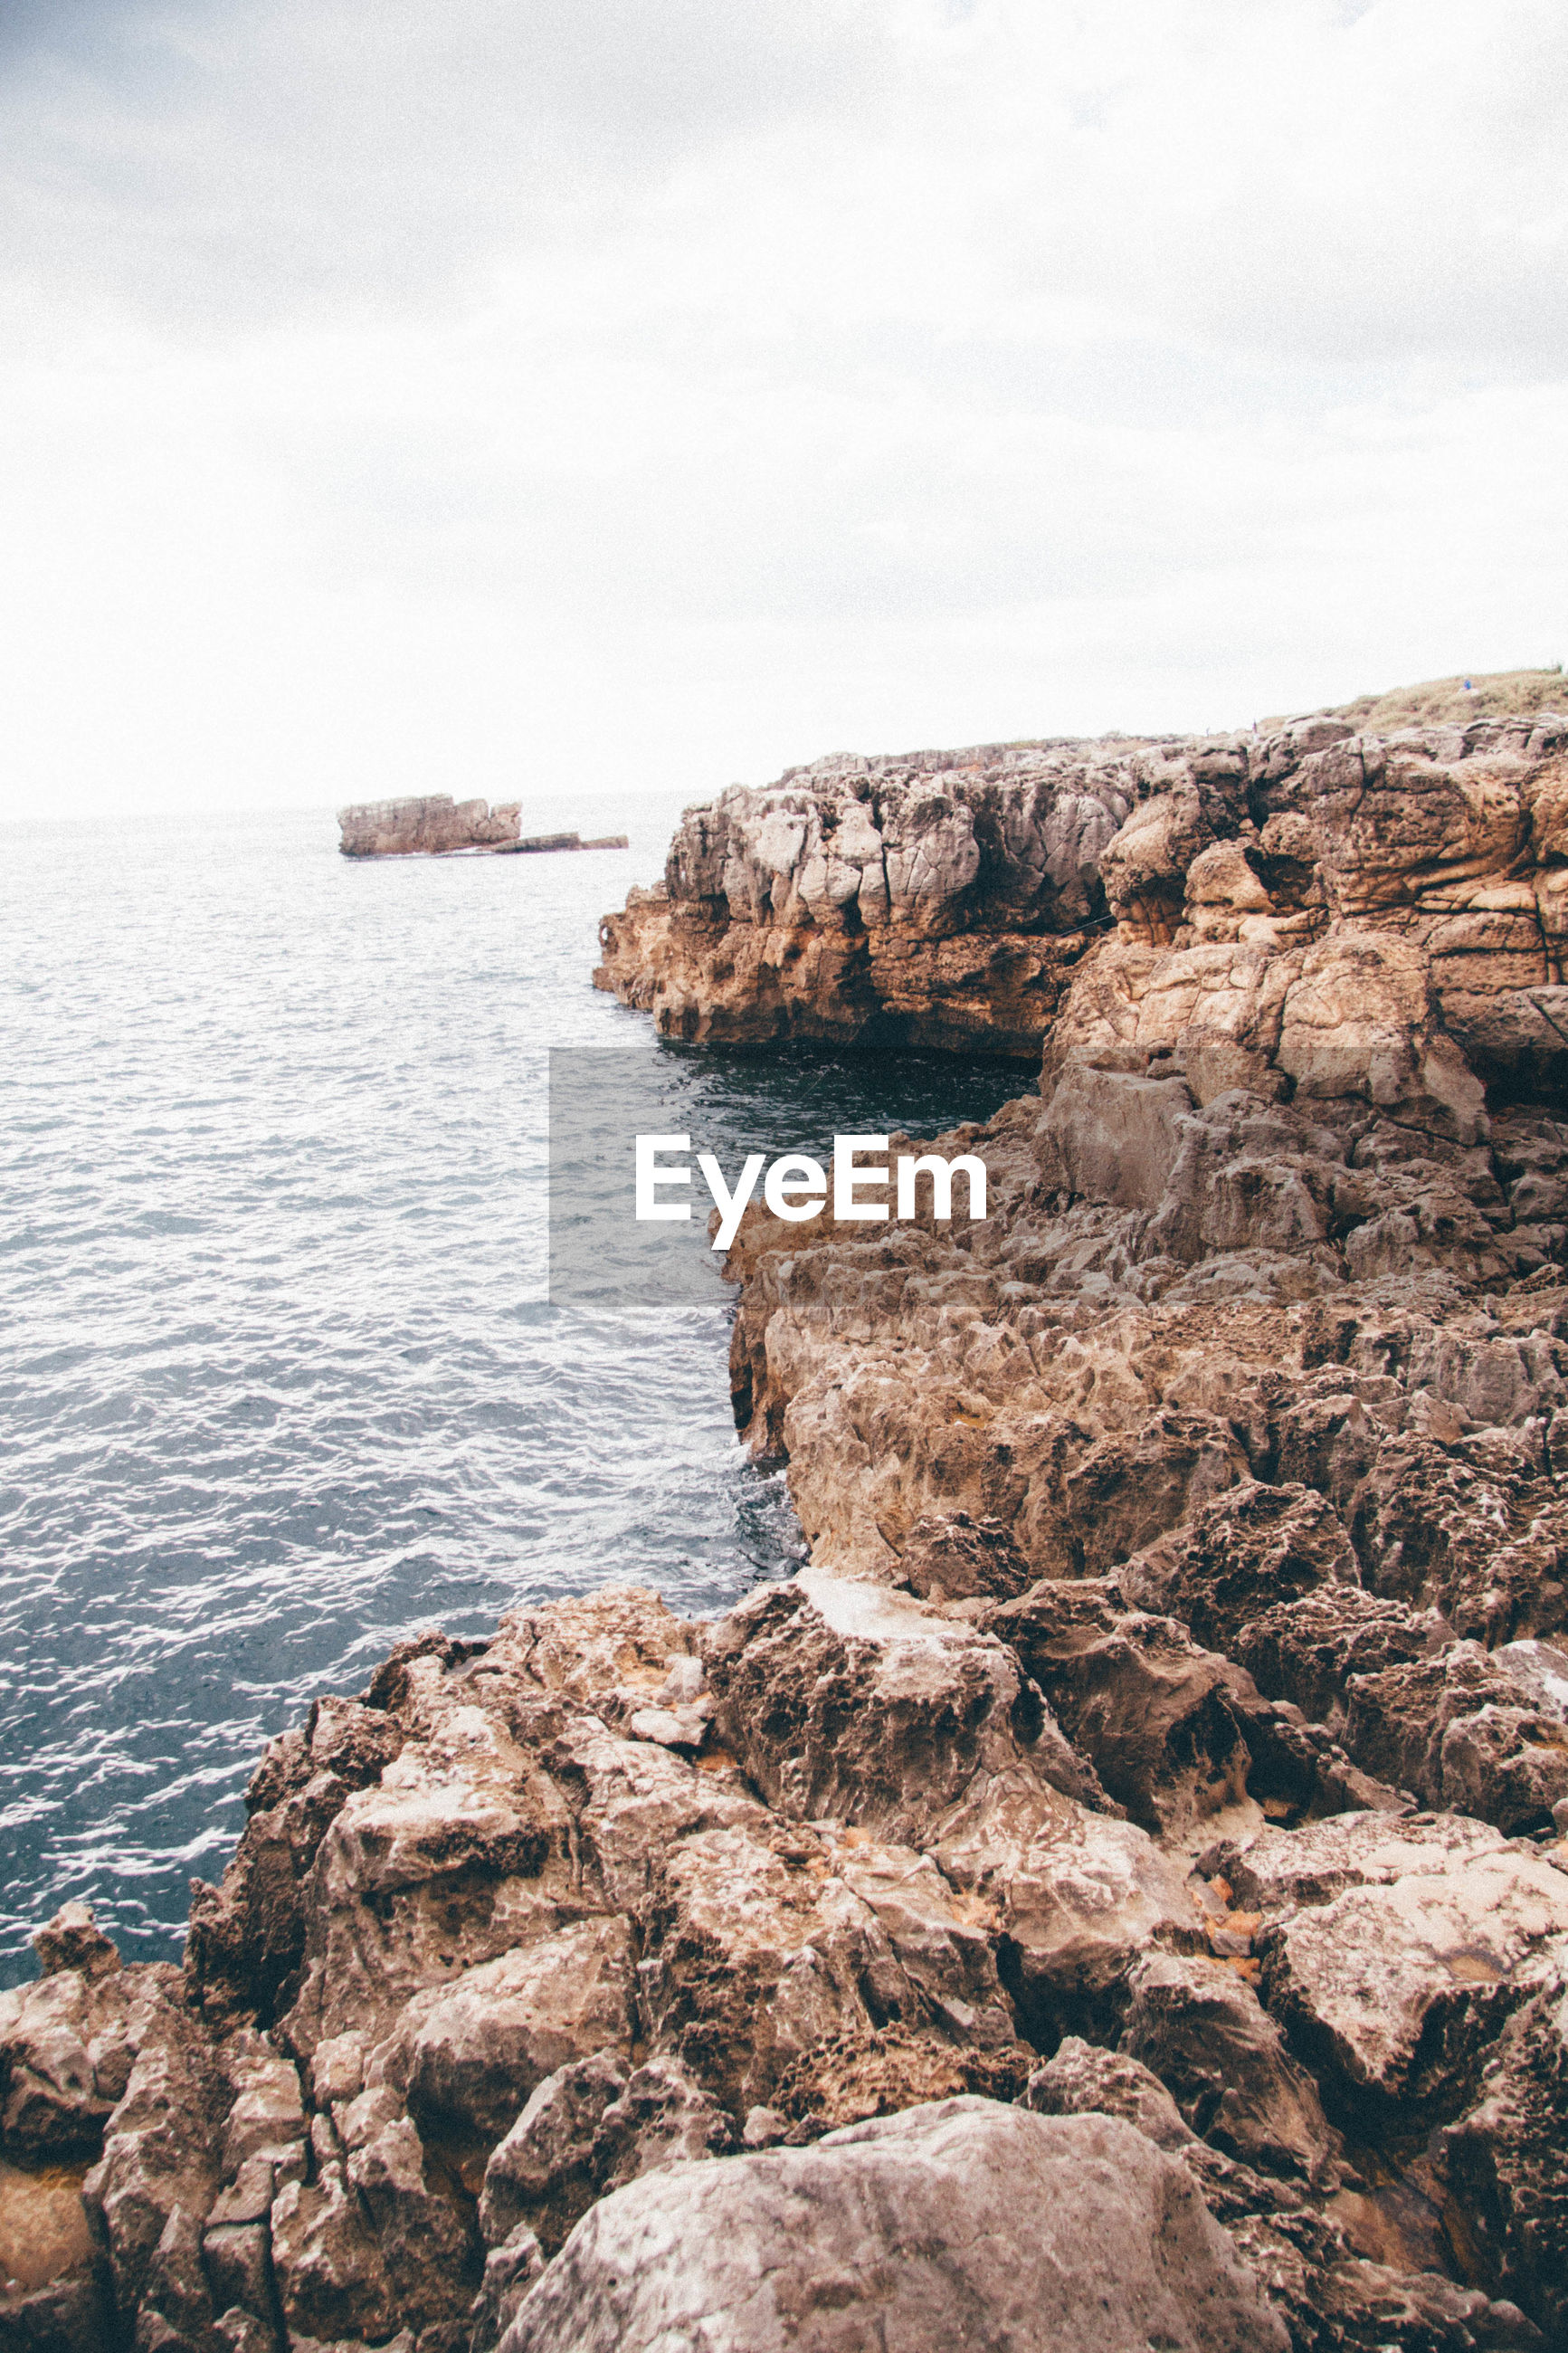 Rock formations by sea against cloudy sky